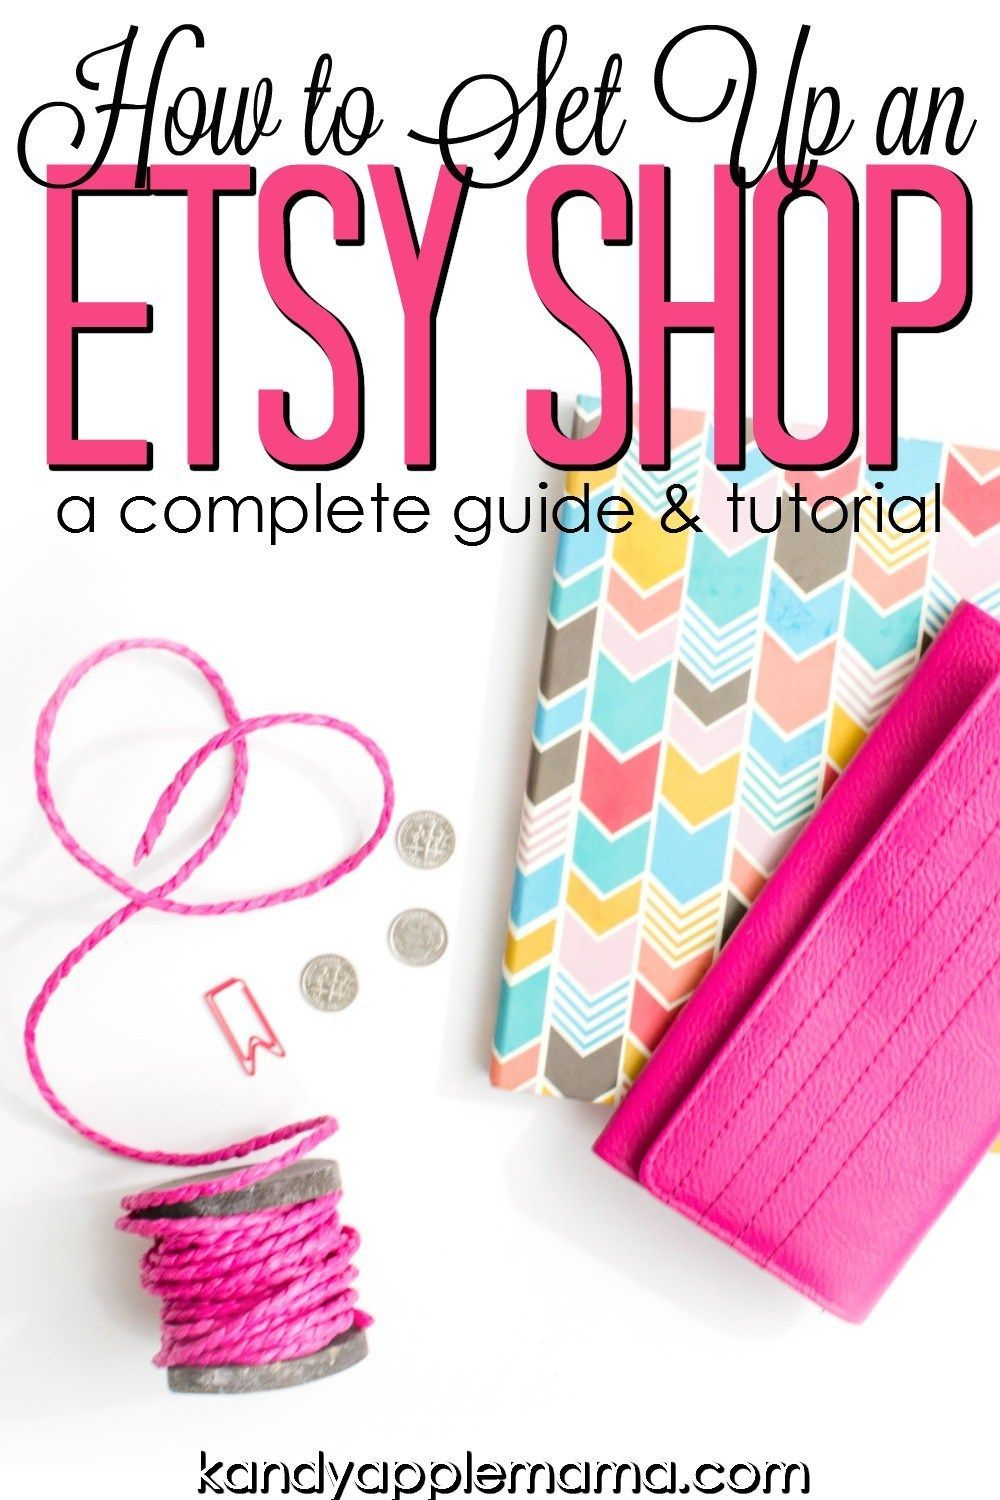 An EPIC Guide + Tutorial on How to Start an Etsy Shop